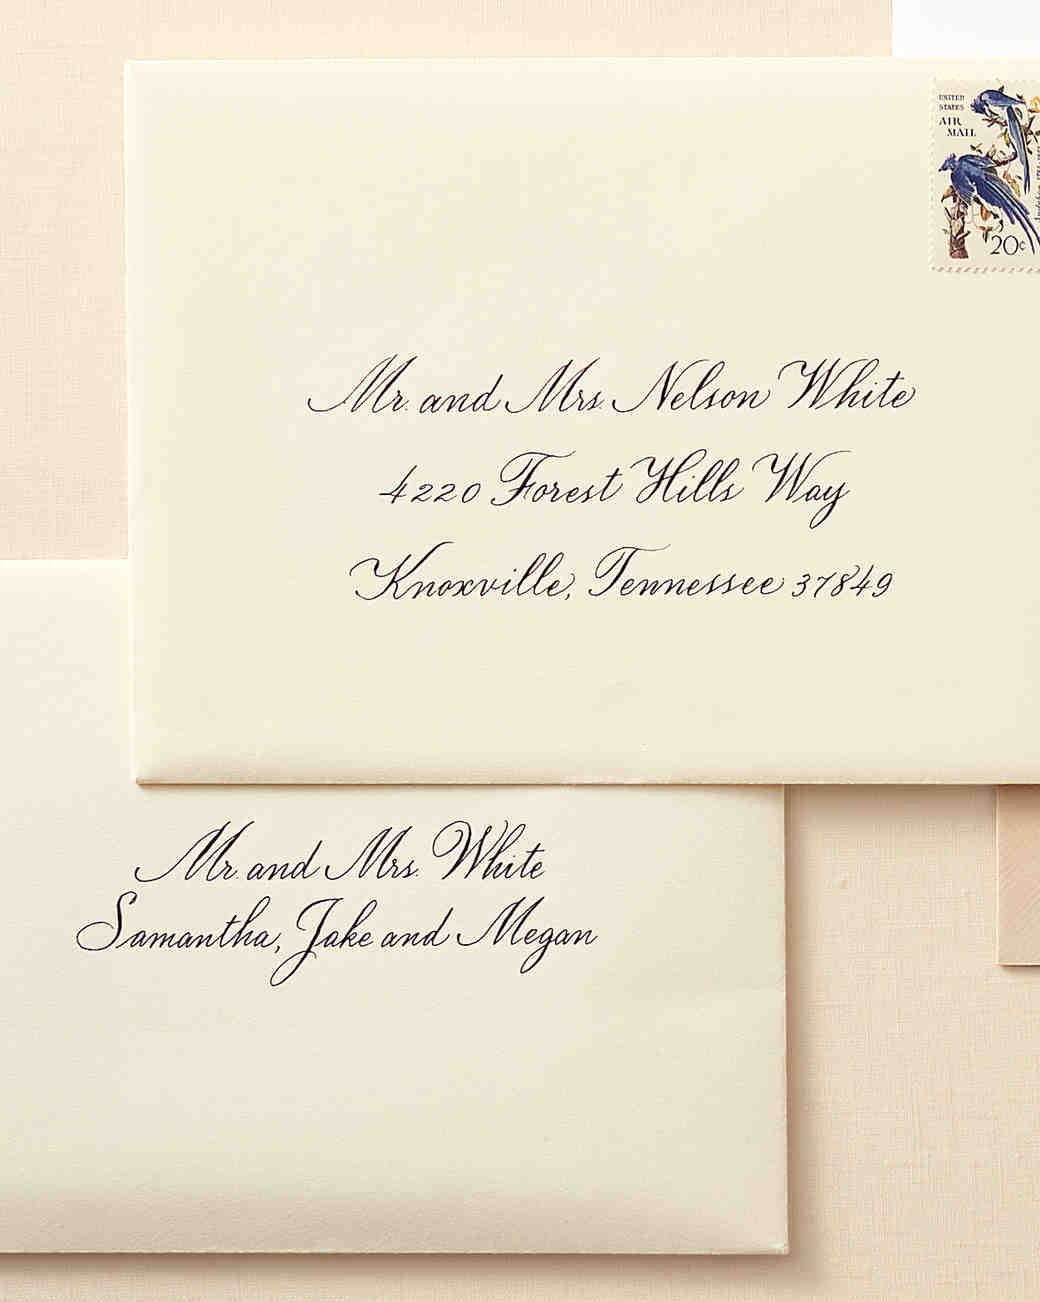 how to address guests on wedding invitation envelopes | martha, Wedding invitations